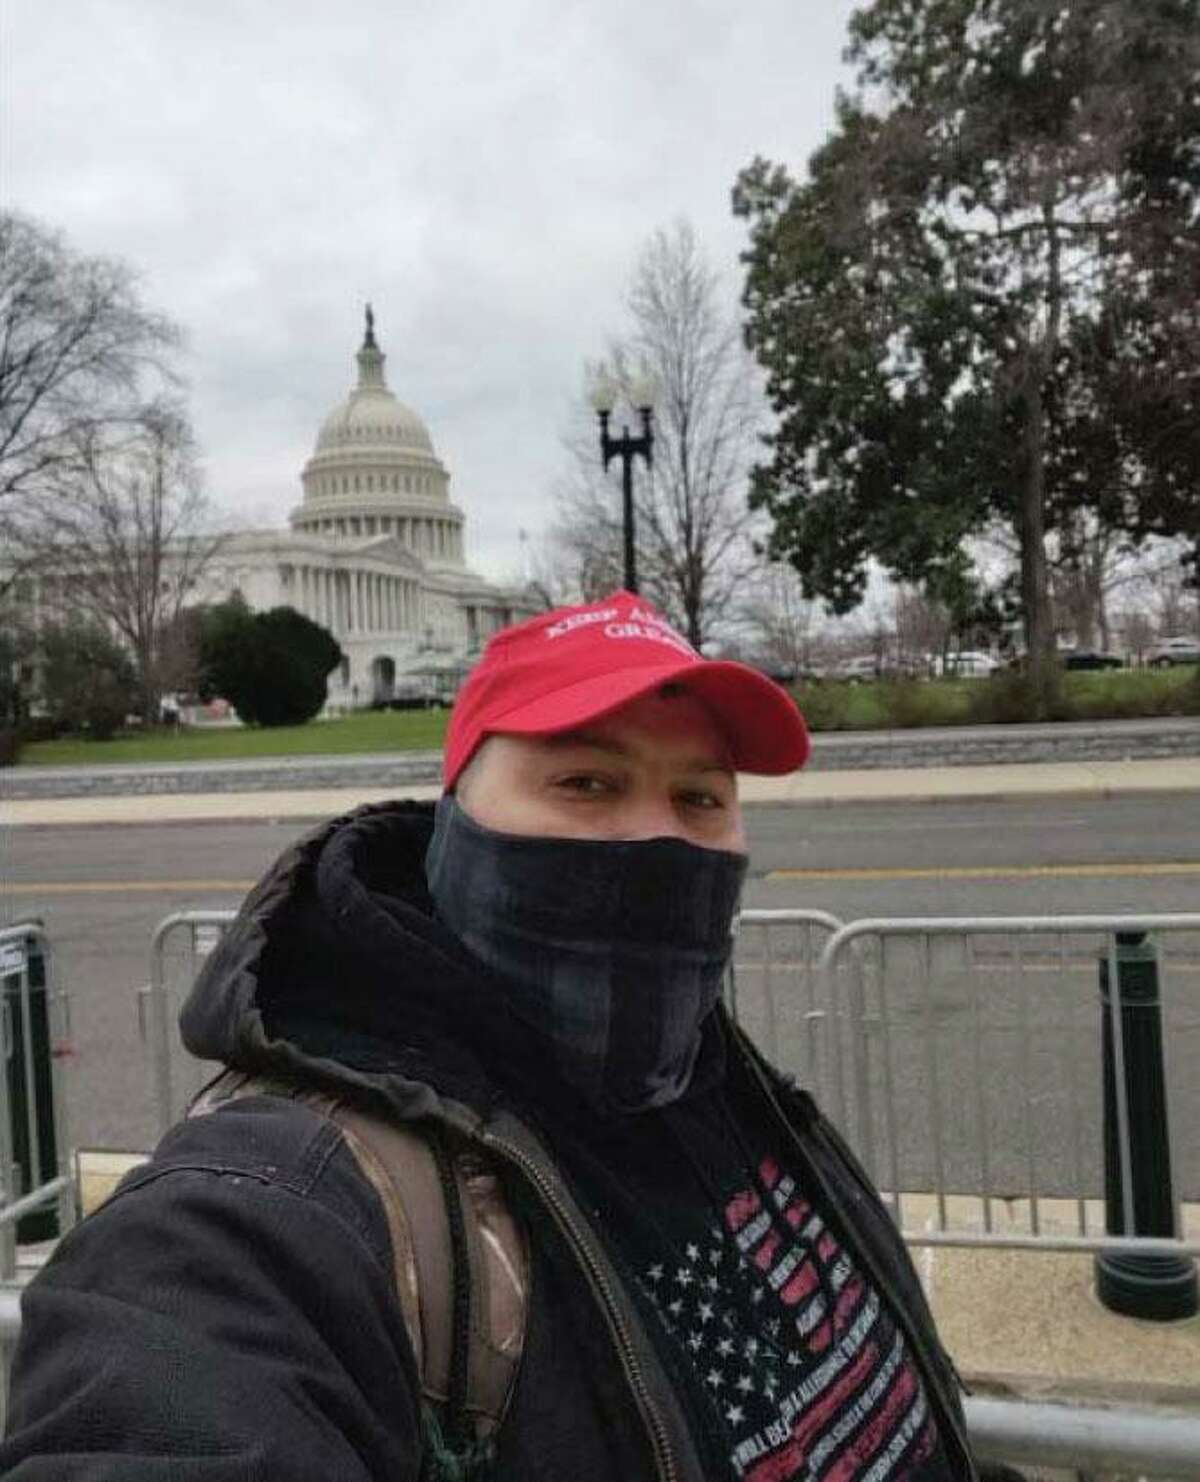 Authorities have charged Joshua Lollar, 39, in the Wednesday, Jan. 6, 2021 insurrection at the U.S. Capitol. FBI officials say he traveled from Texas and participated in the riot, appearing to be on the